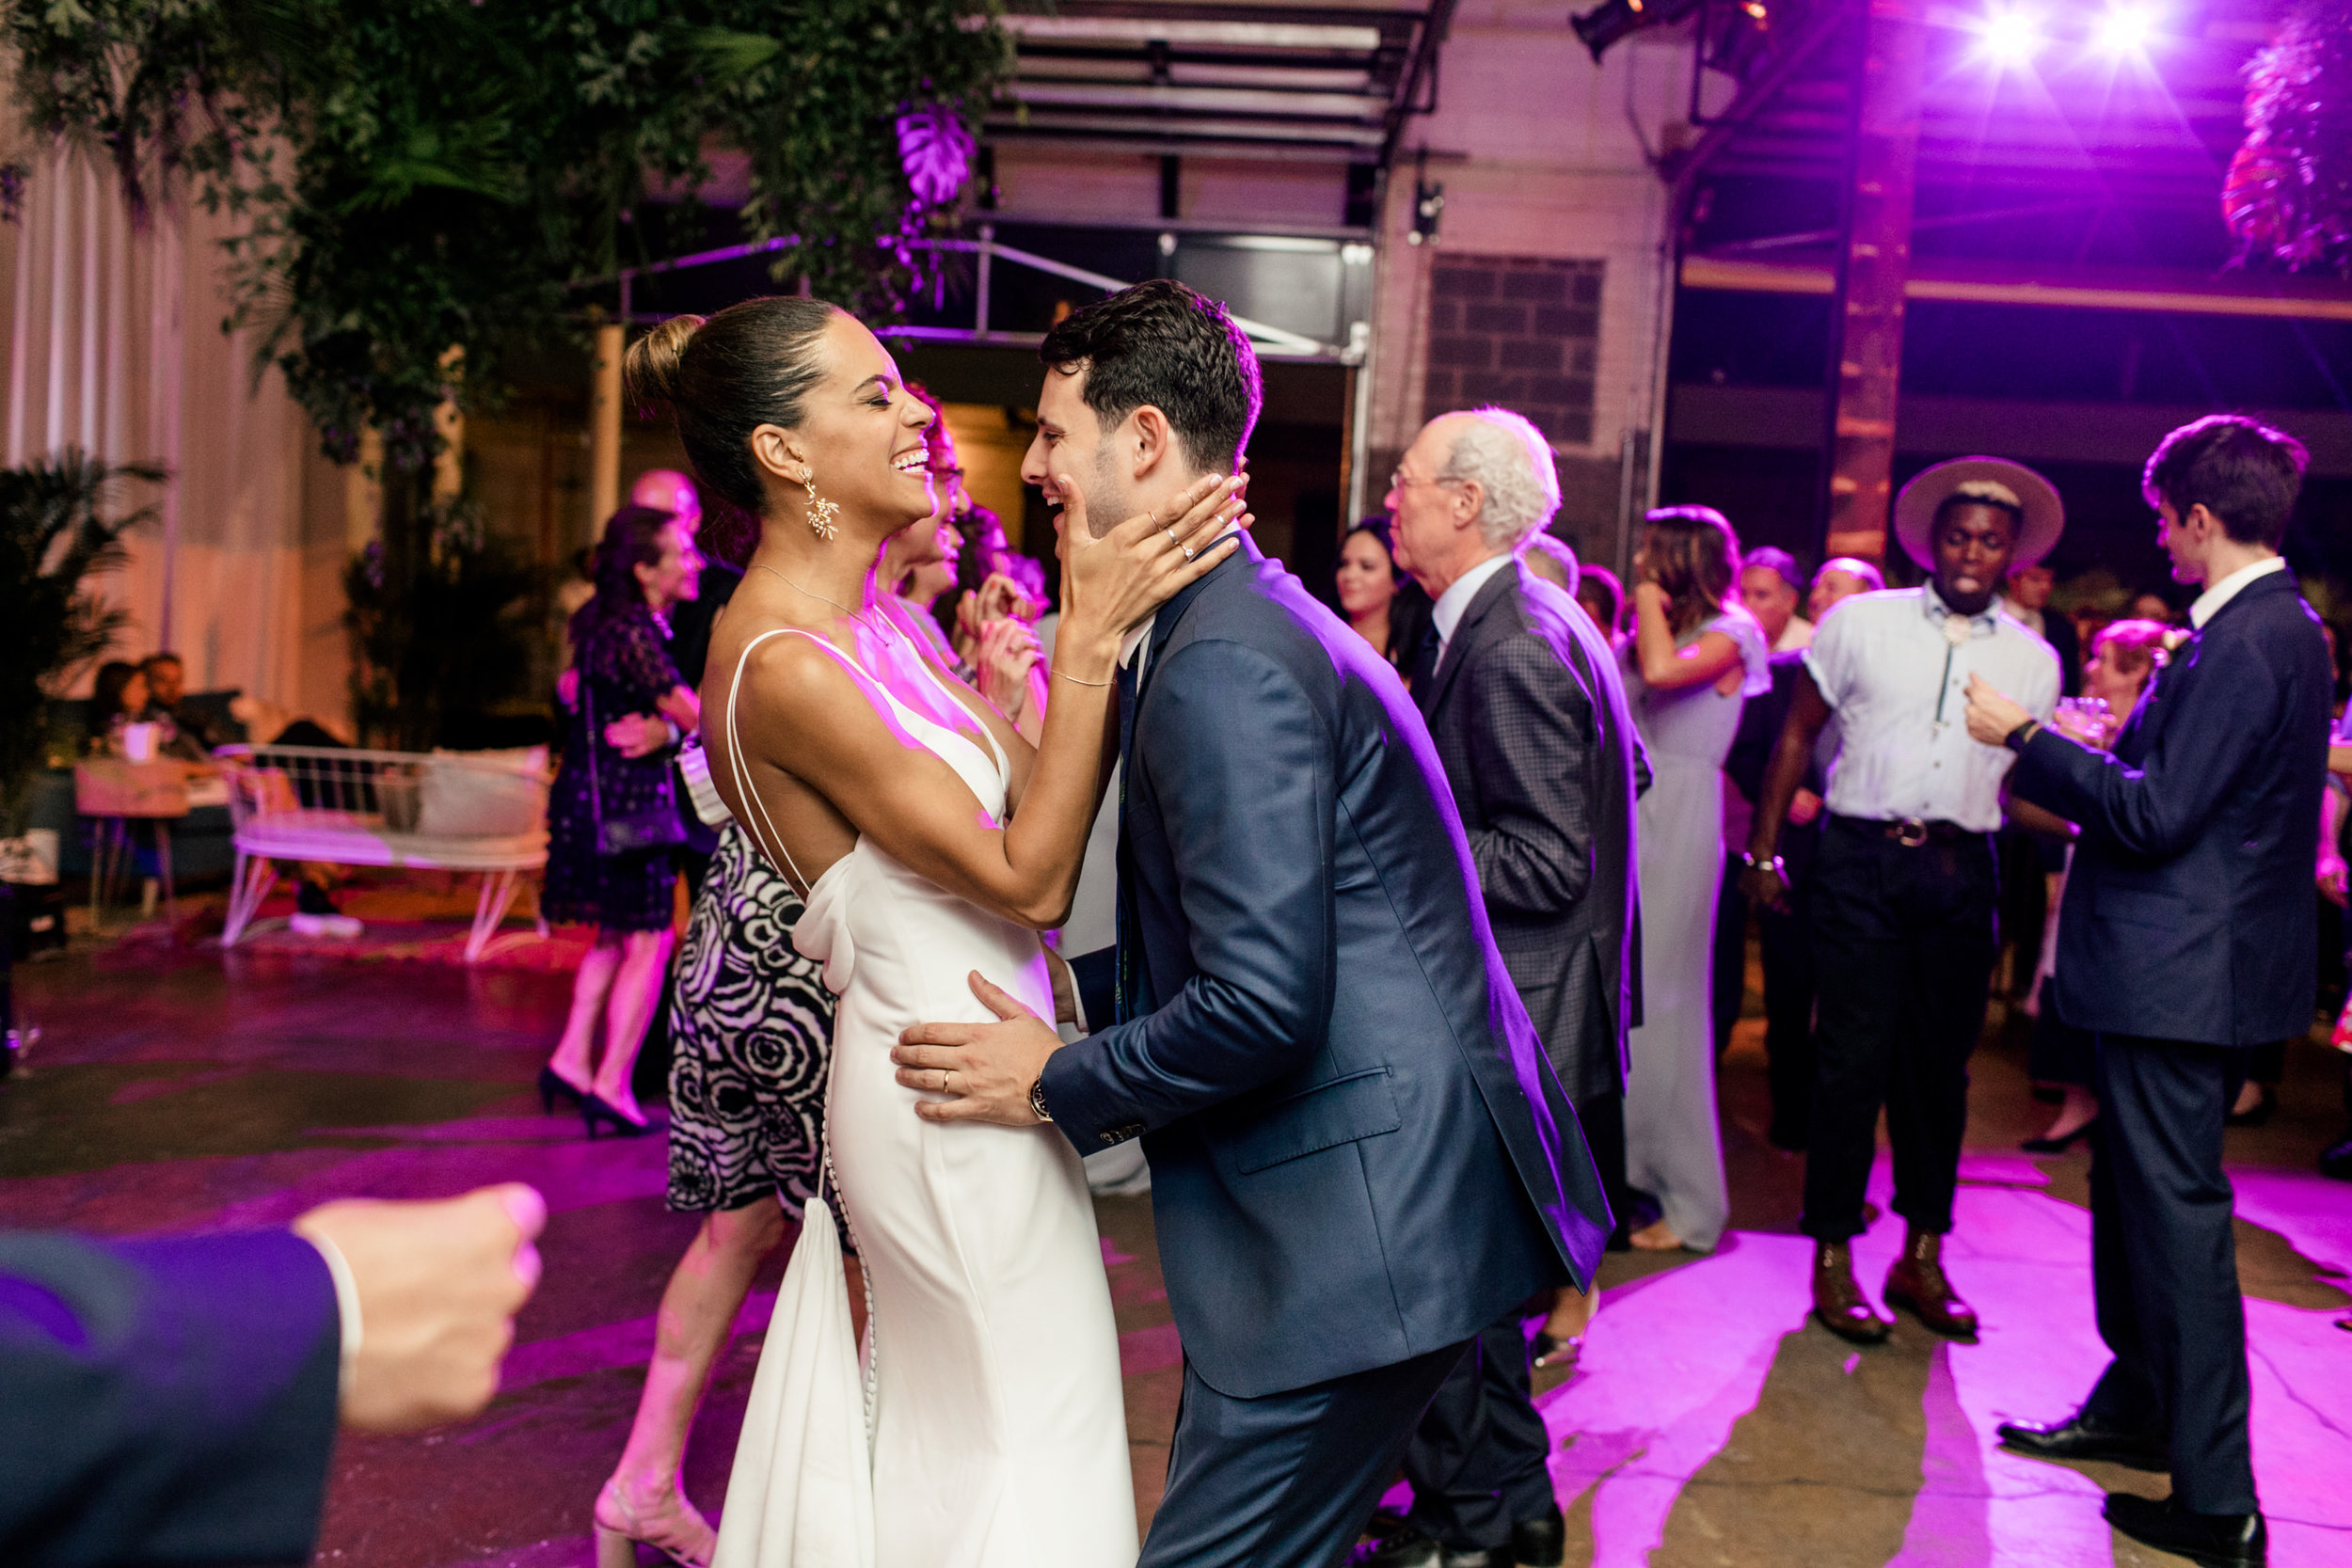 photography-wedding-weddings-natural-candid-dock 5 dc-washington dc-philadelphia-mixed race-editorial-modern-fine-art-080.JPG